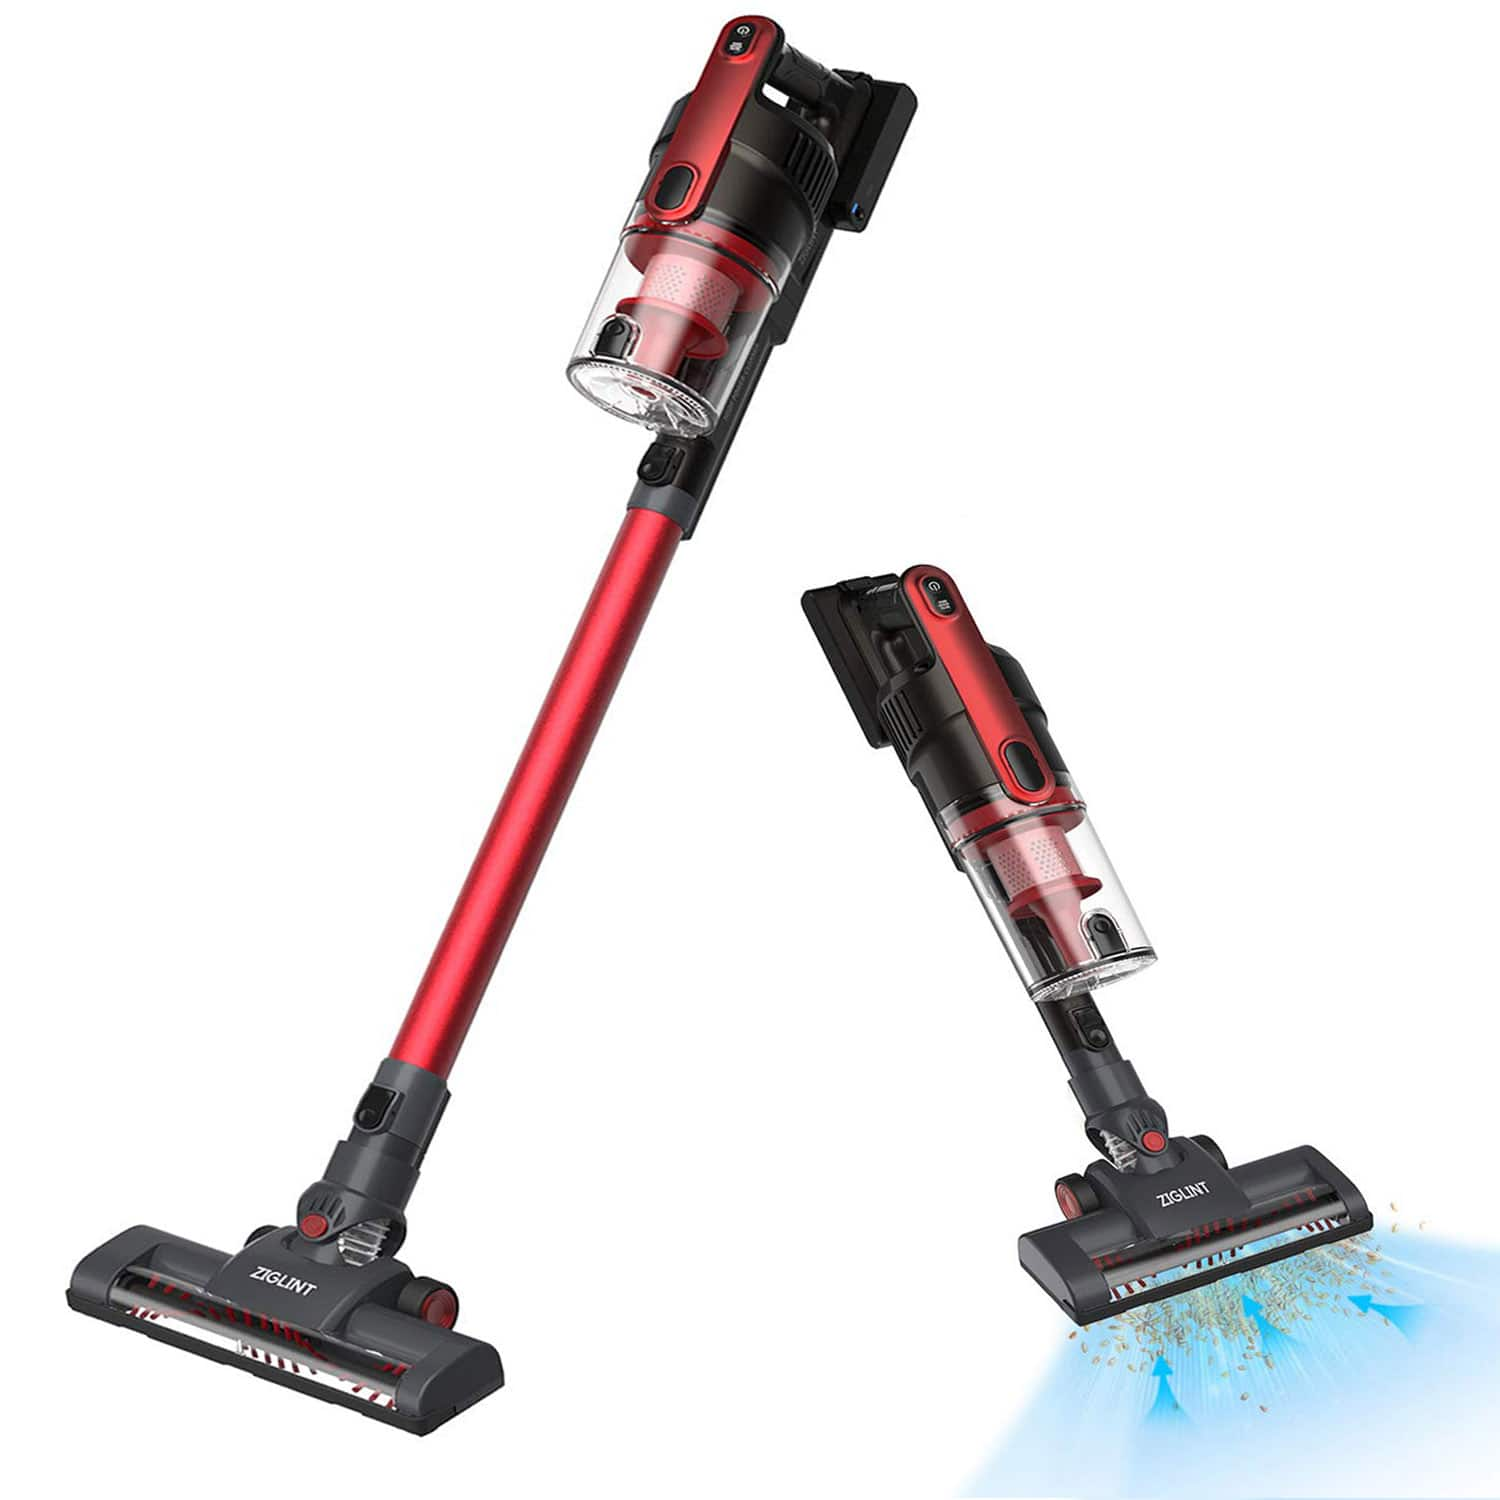 2-in-1 Lightweight Cordless Stick Vacuum Cleaner with 2000mAh Rechargeable Battery $55.99 + FS